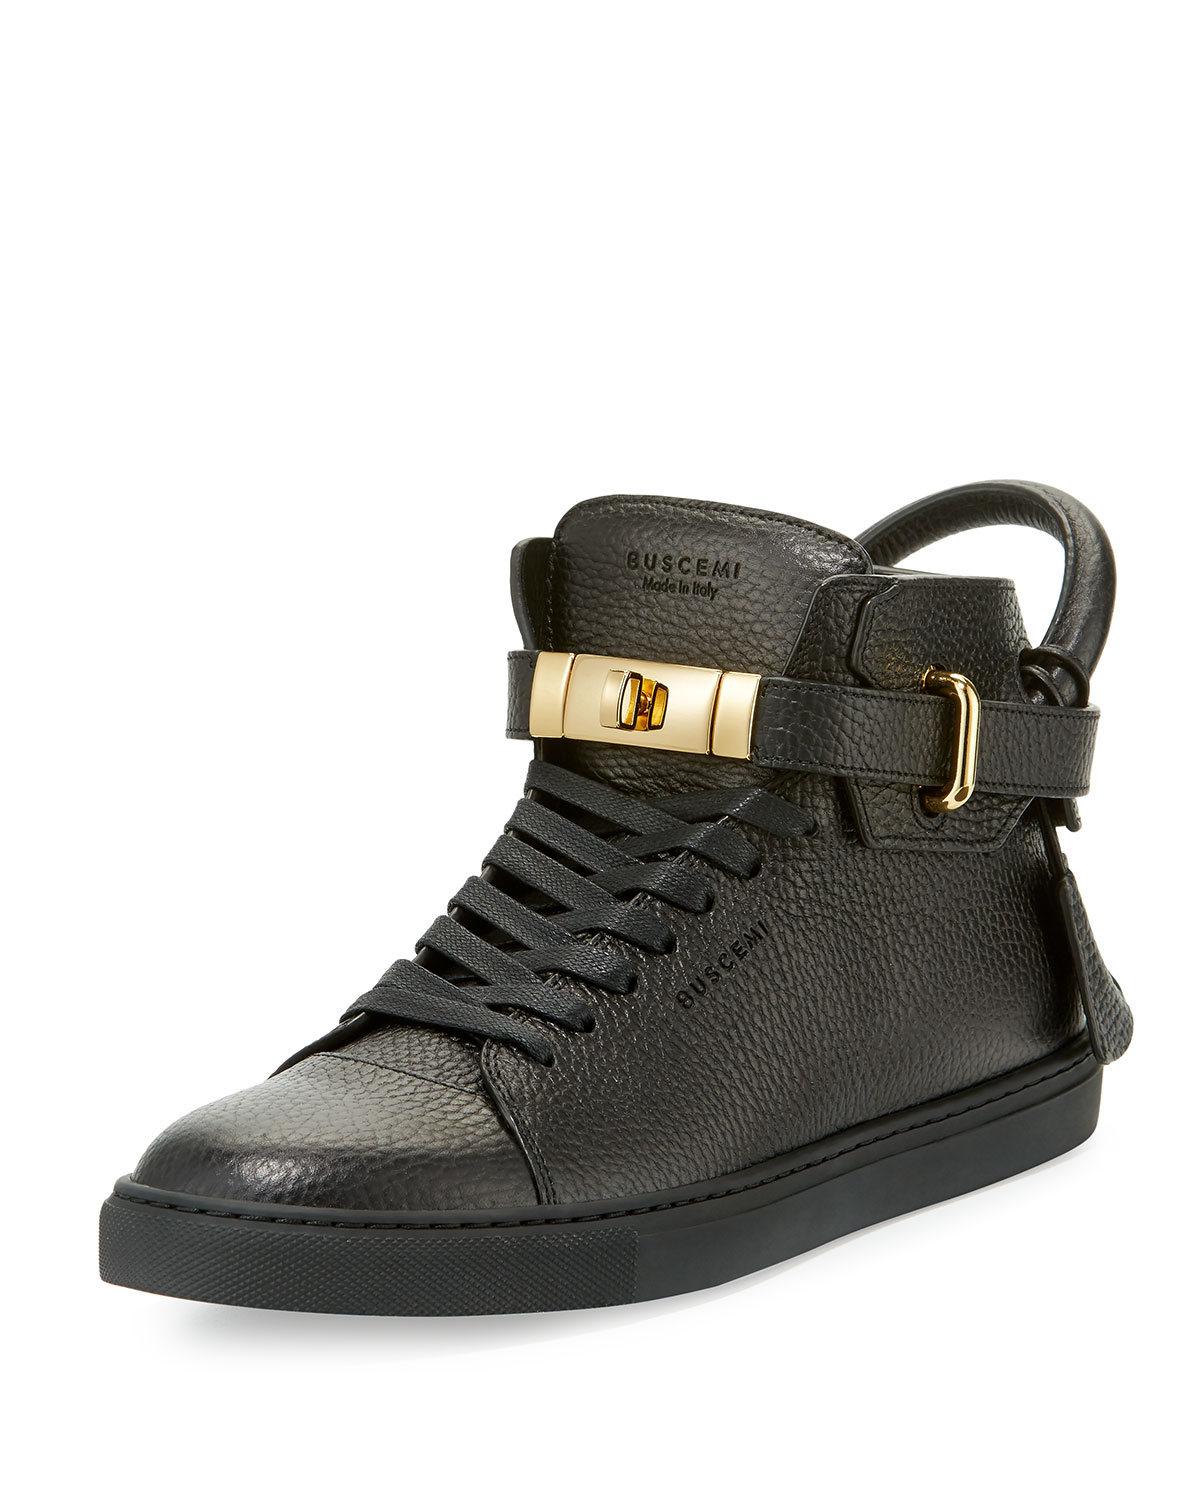 Leather Sneakers with Padlock, Black